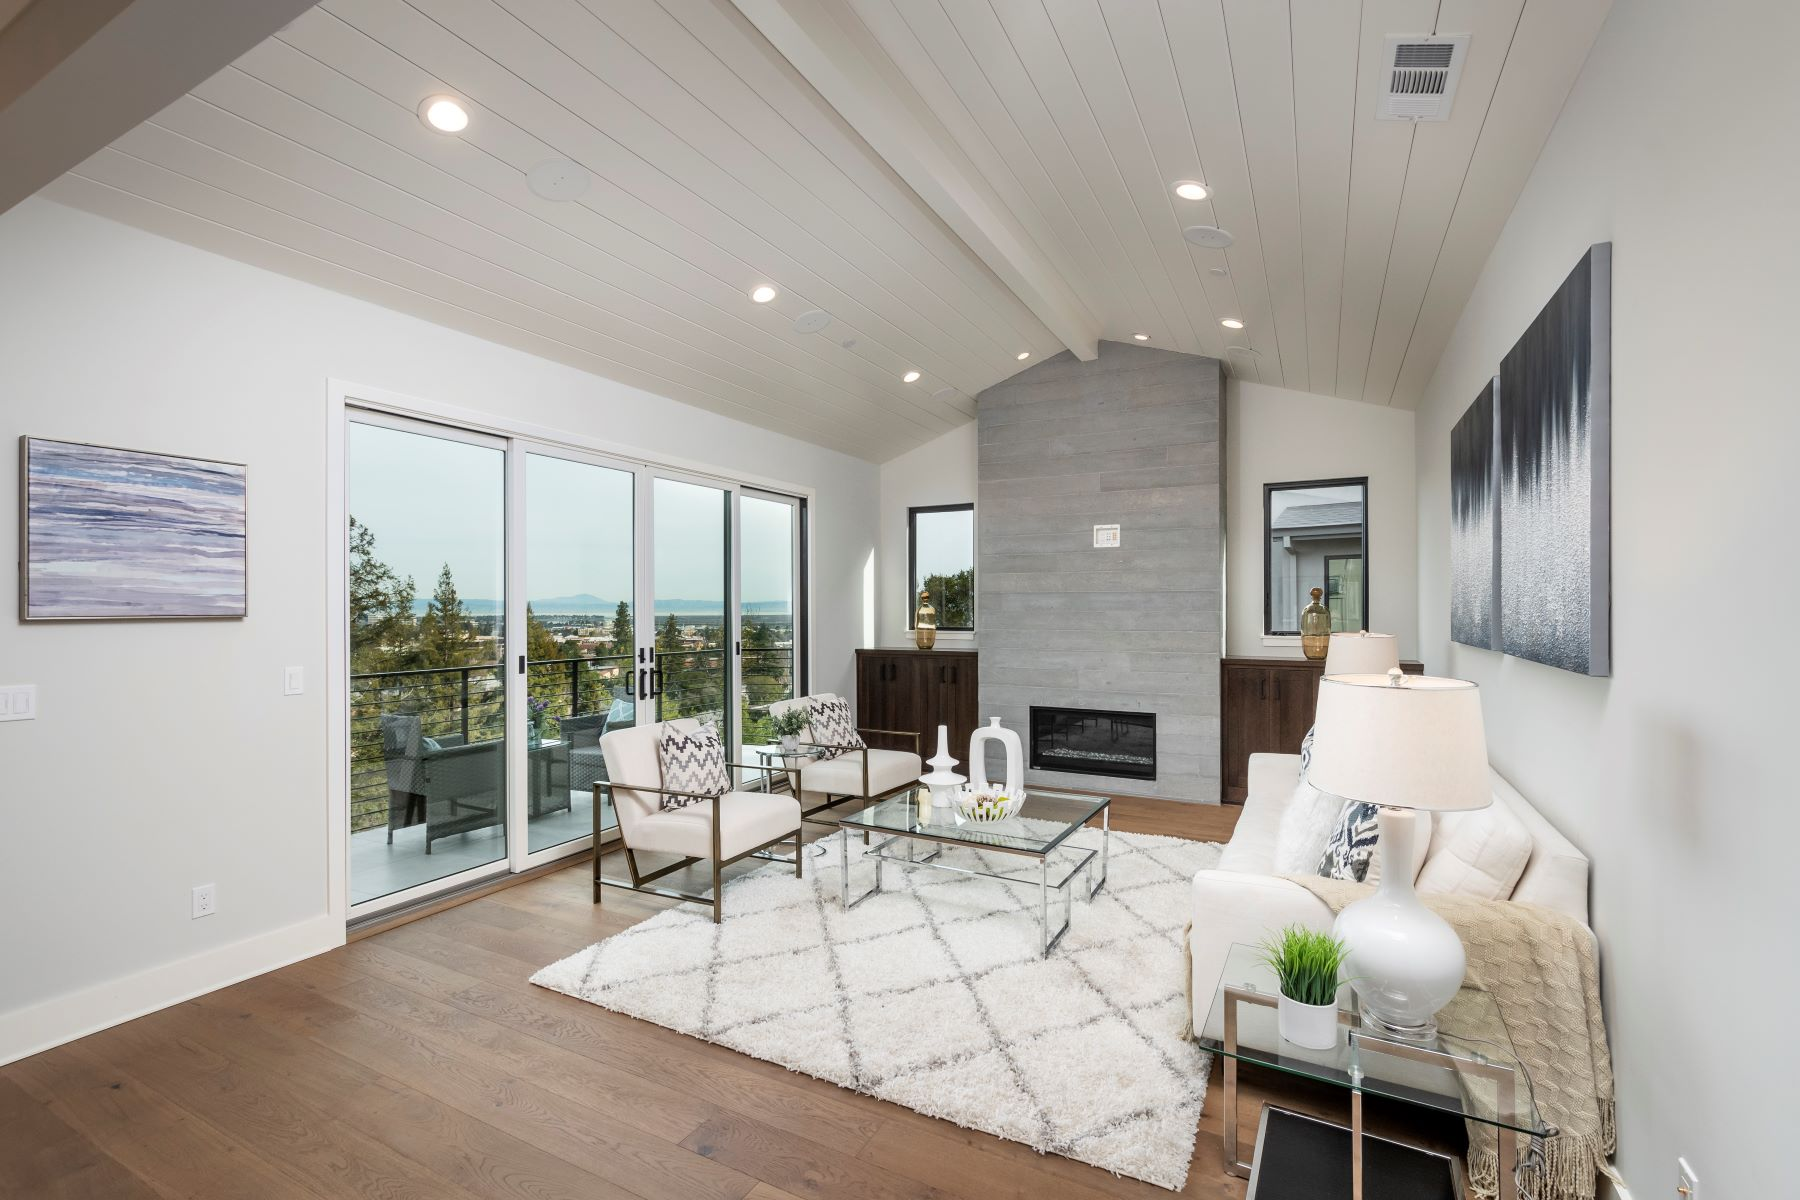 Single Family Home for Active at Exceptional Modern Farmhouse 706 Knoll Drive San Carlos, California 94070 United States